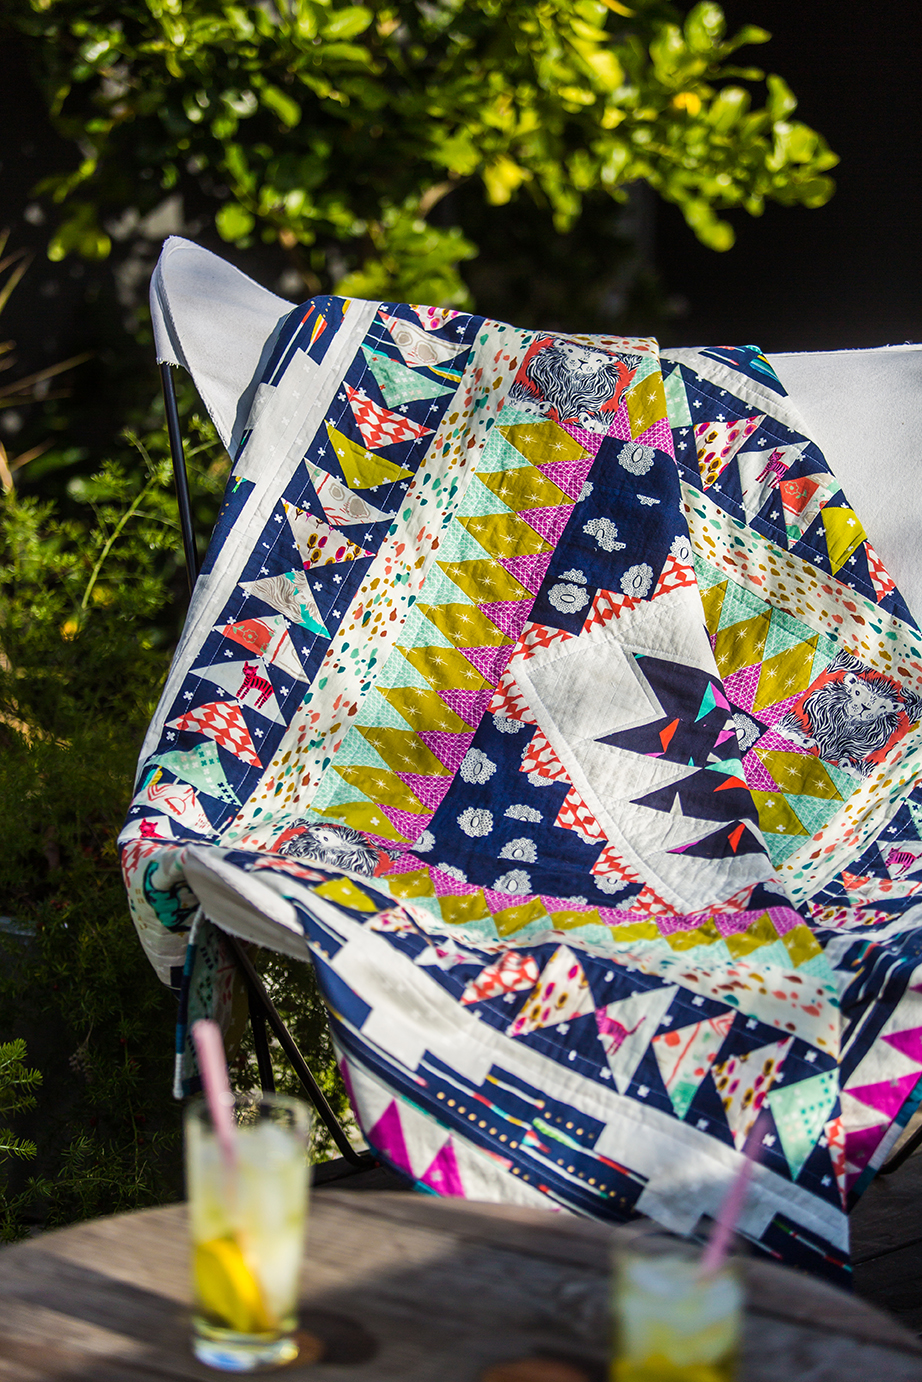 Quilt made by Nancy Purvis